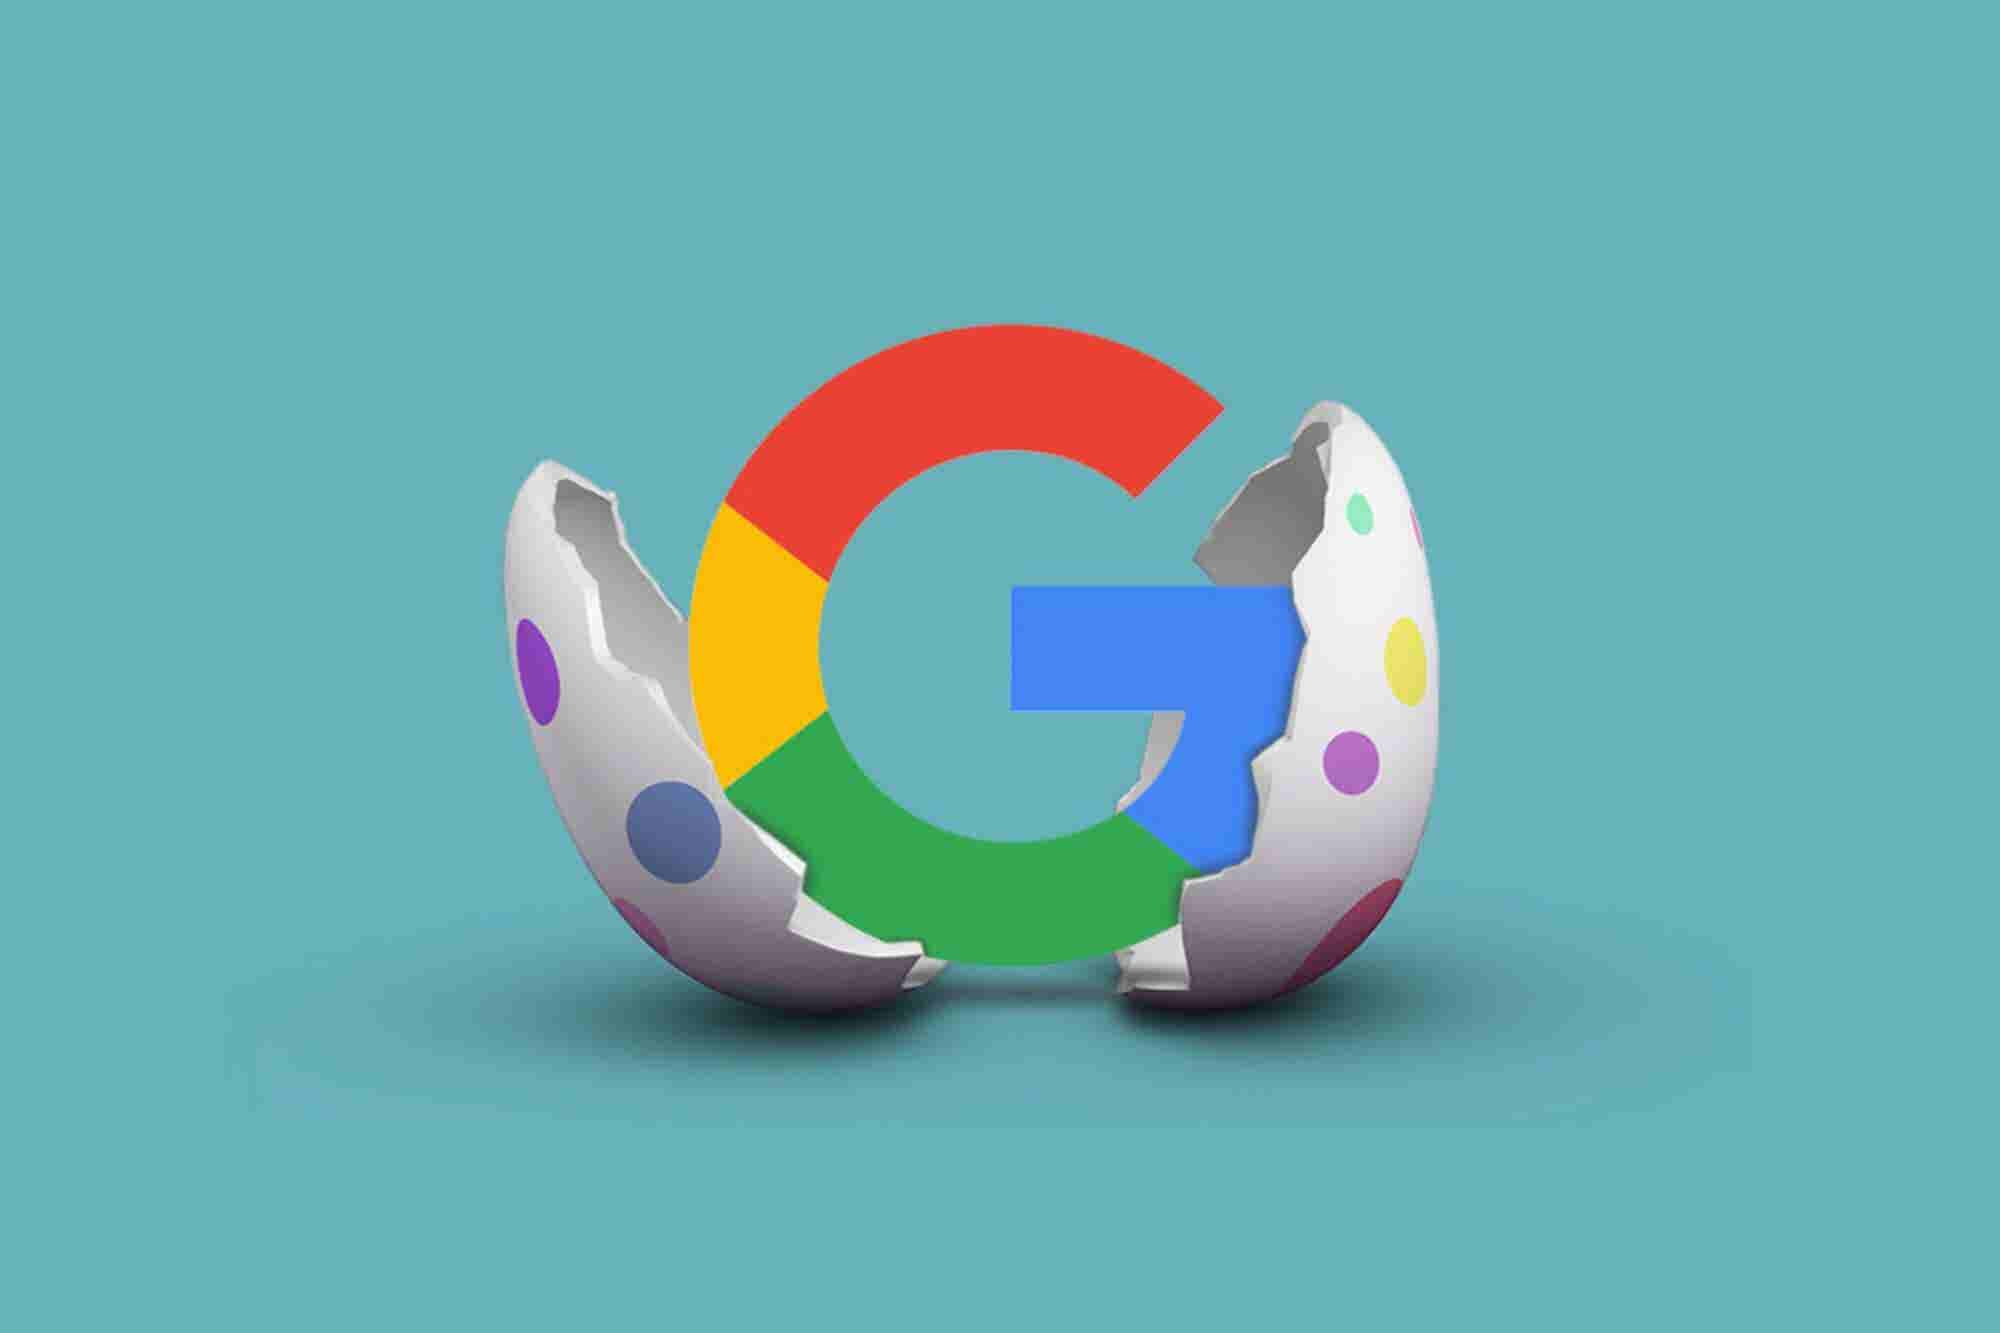 Google Search Turns 20 Today. Check Out the New Easter Eggs and Homepage Doodle.